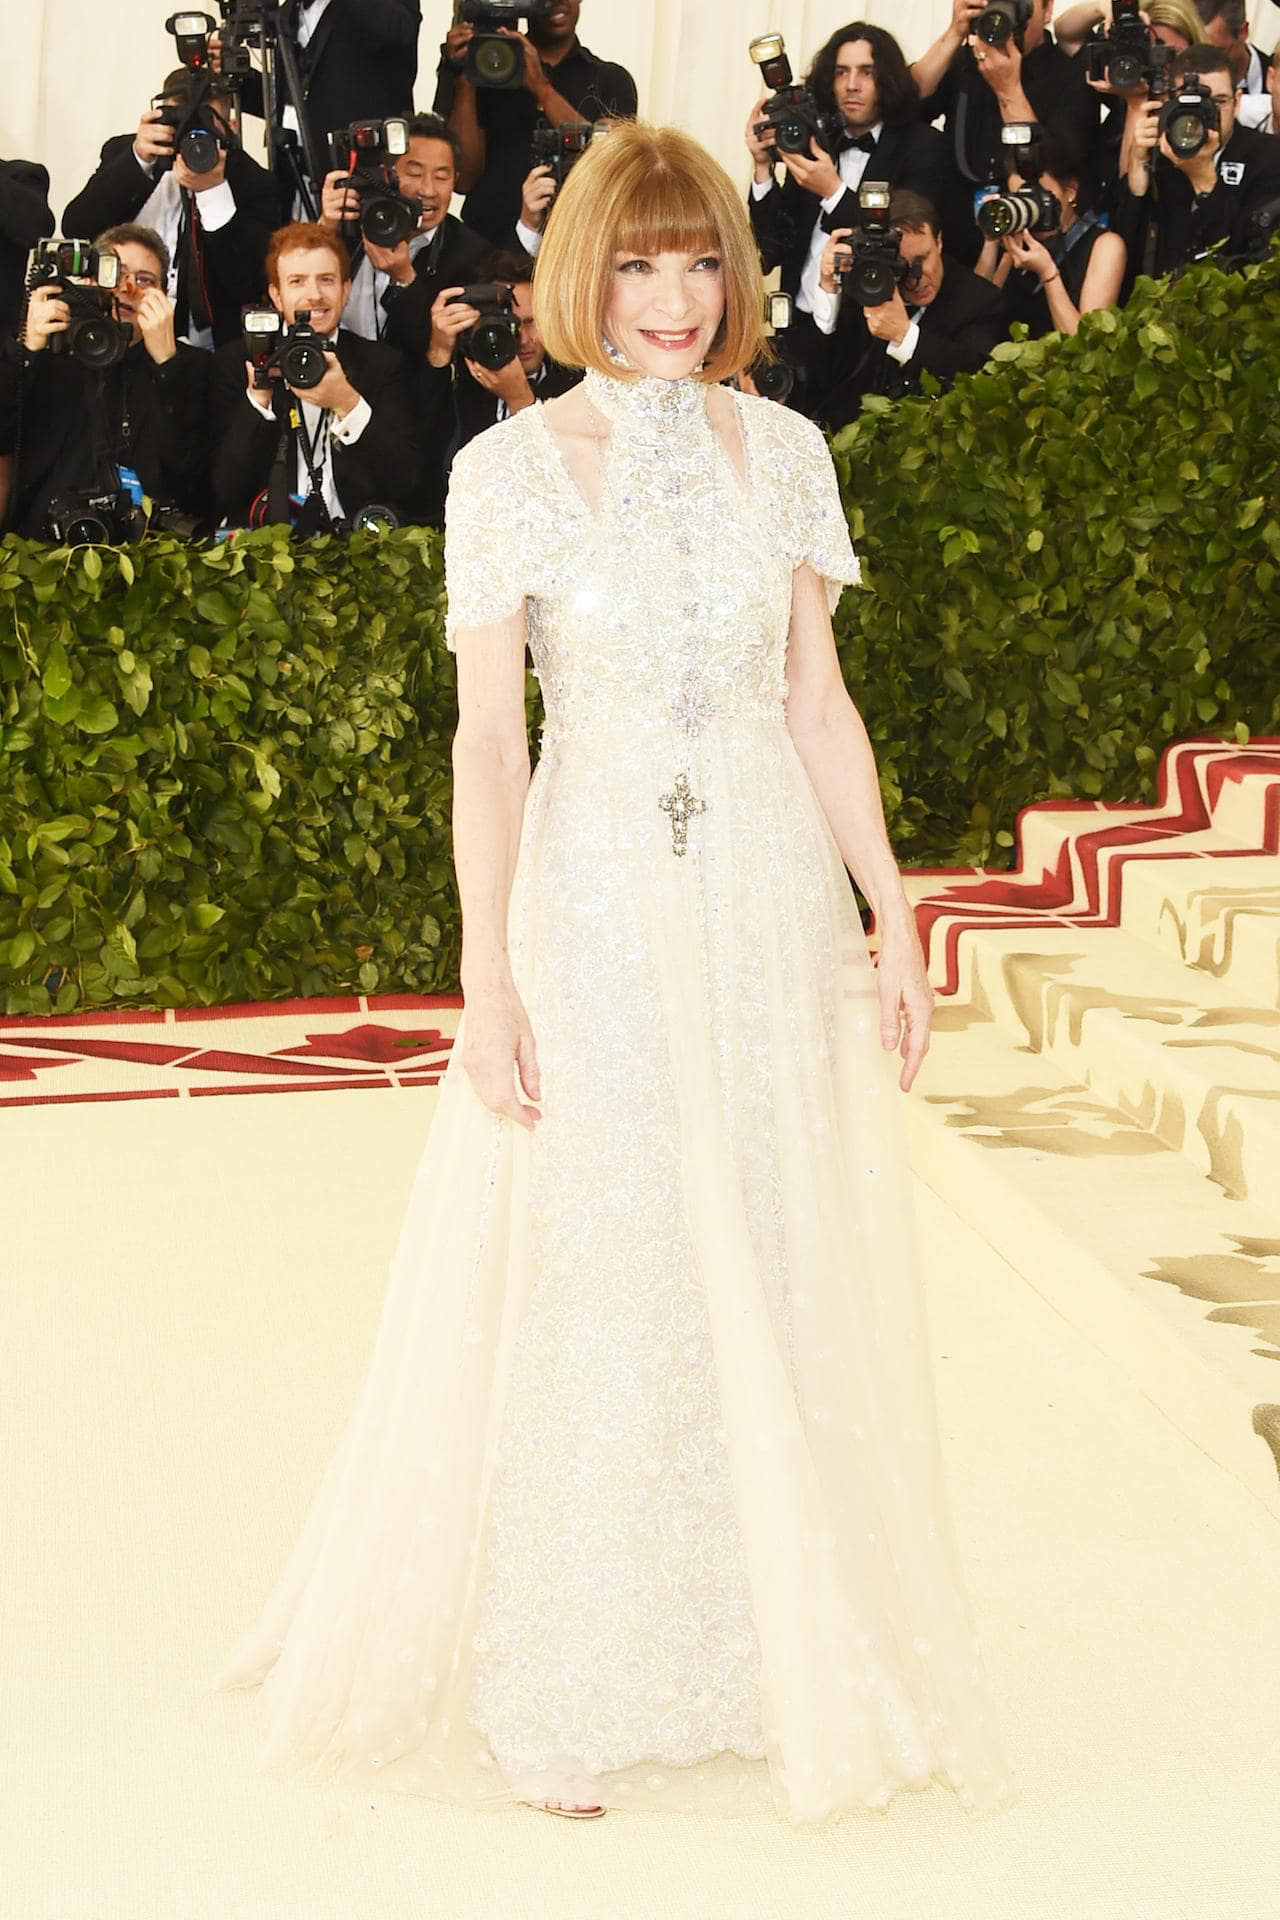 Anna Wintour in Chanel at The Met Gala